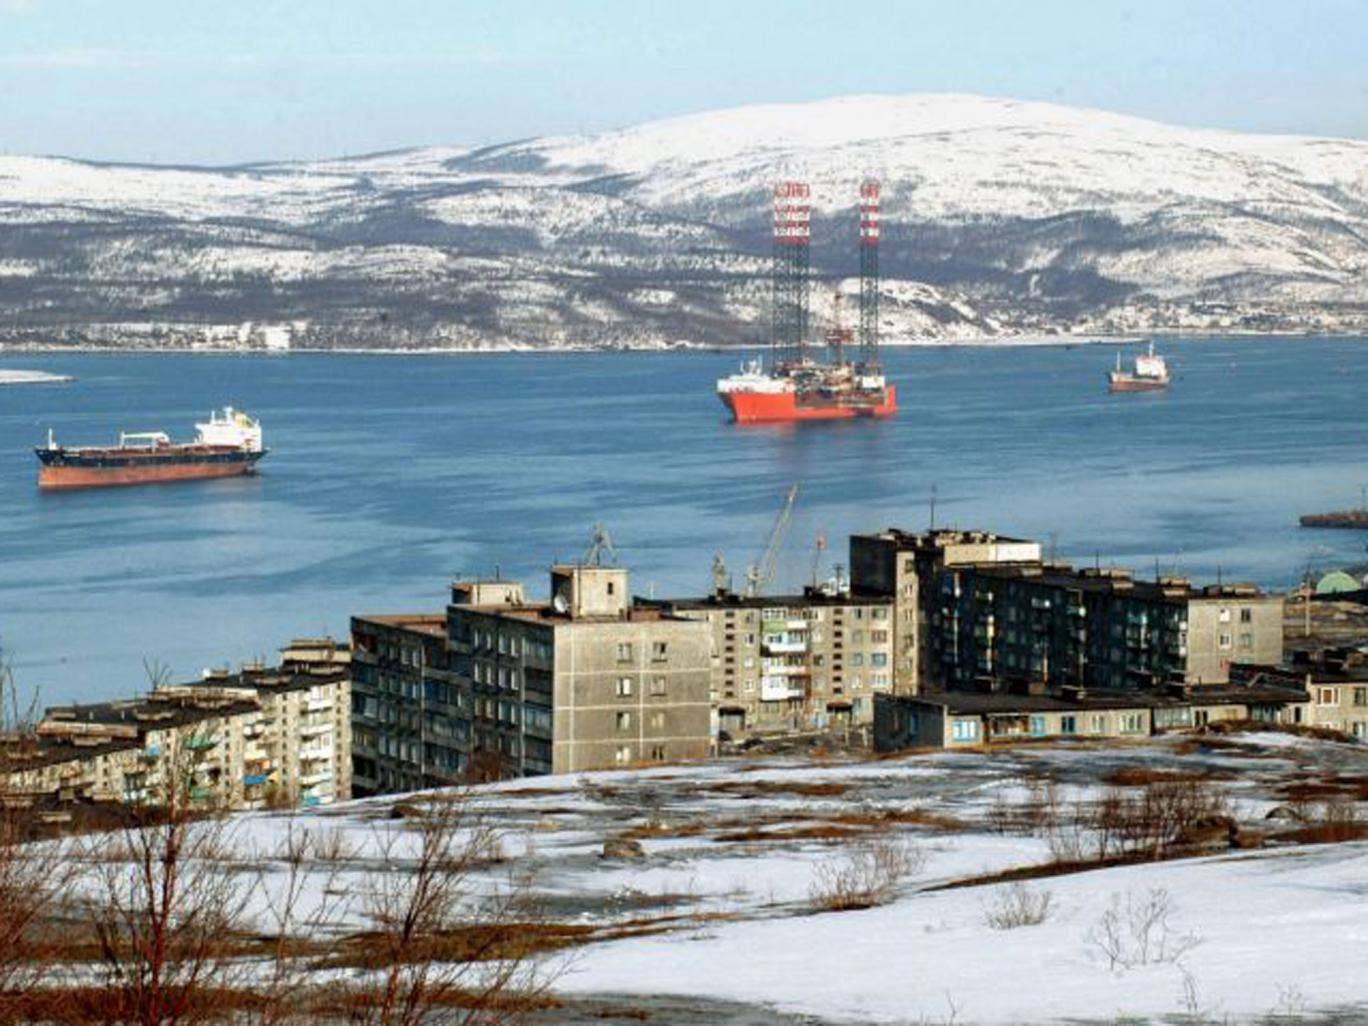 Murmansk, in northern Russia, where the incident took place